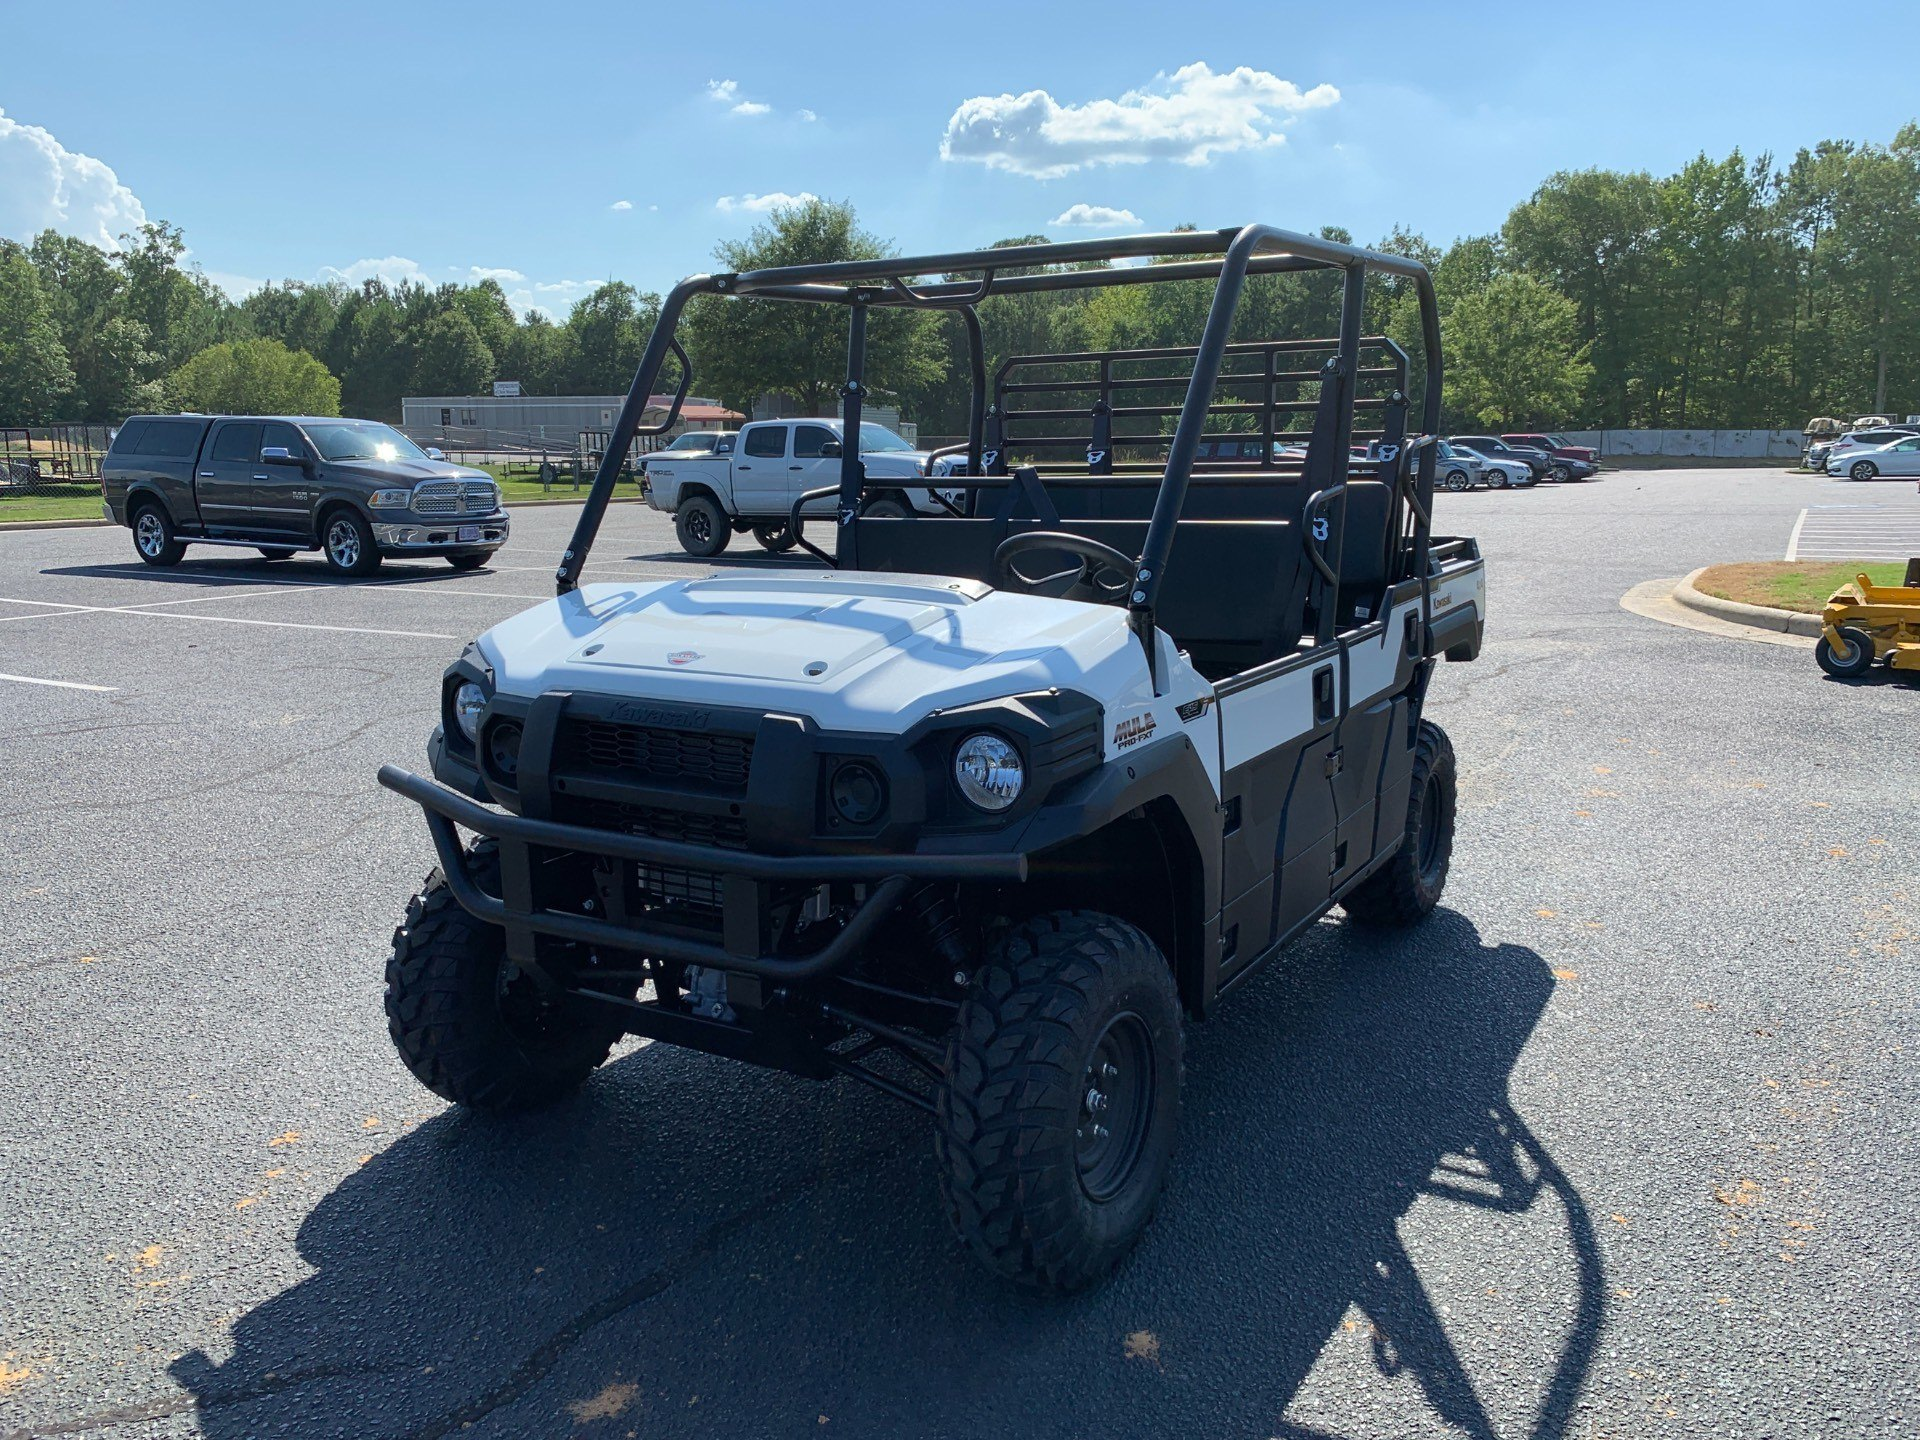 2020 Kawasaki Mule PRO-FXT EPS in Greenville, North Carolina - Photo 5